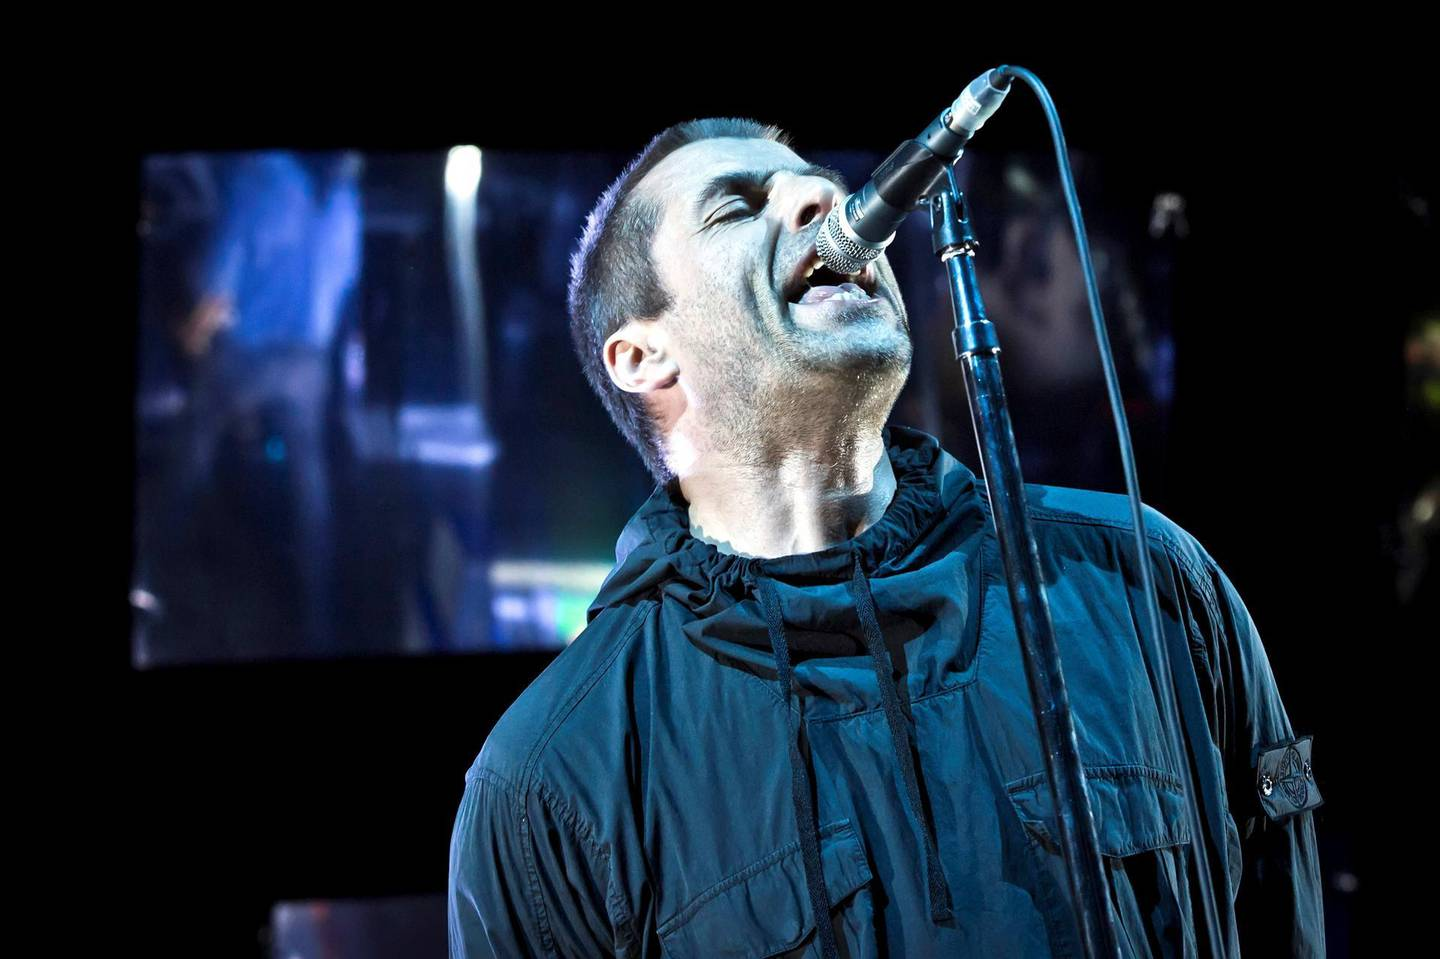 BERLIN, GERMANY - SEPTEMBER 30: British singer Liam Gallagher performs live on stage during 'Die schoene Nacht' at the Tempodrom on September 30, 2017 in Berlin, Germany. (Photo by Frank Hoensch/Redferns)